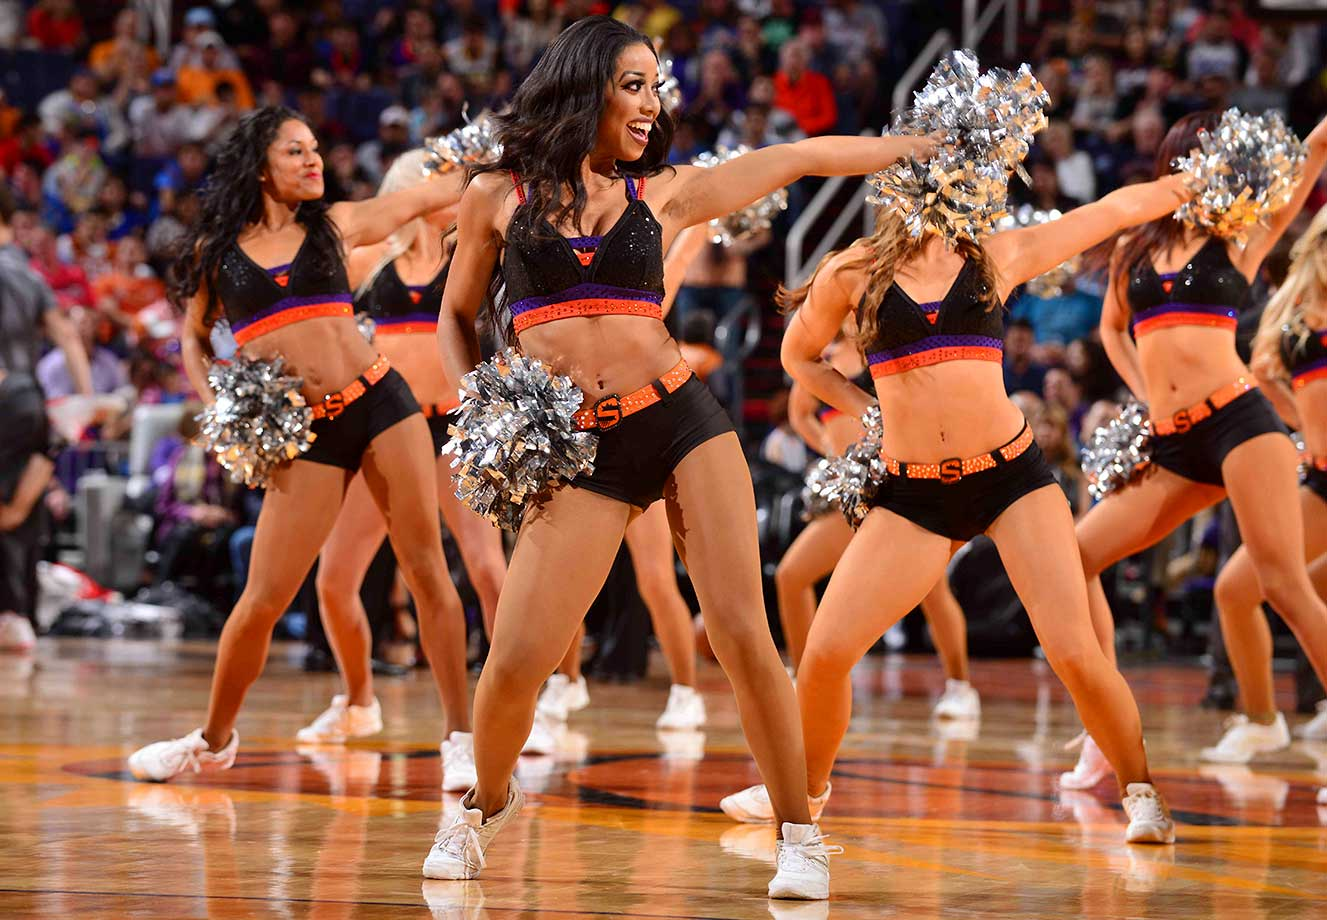 Dancers perform during the game between the Oklahoma City Thunder and Phoenix Suns.